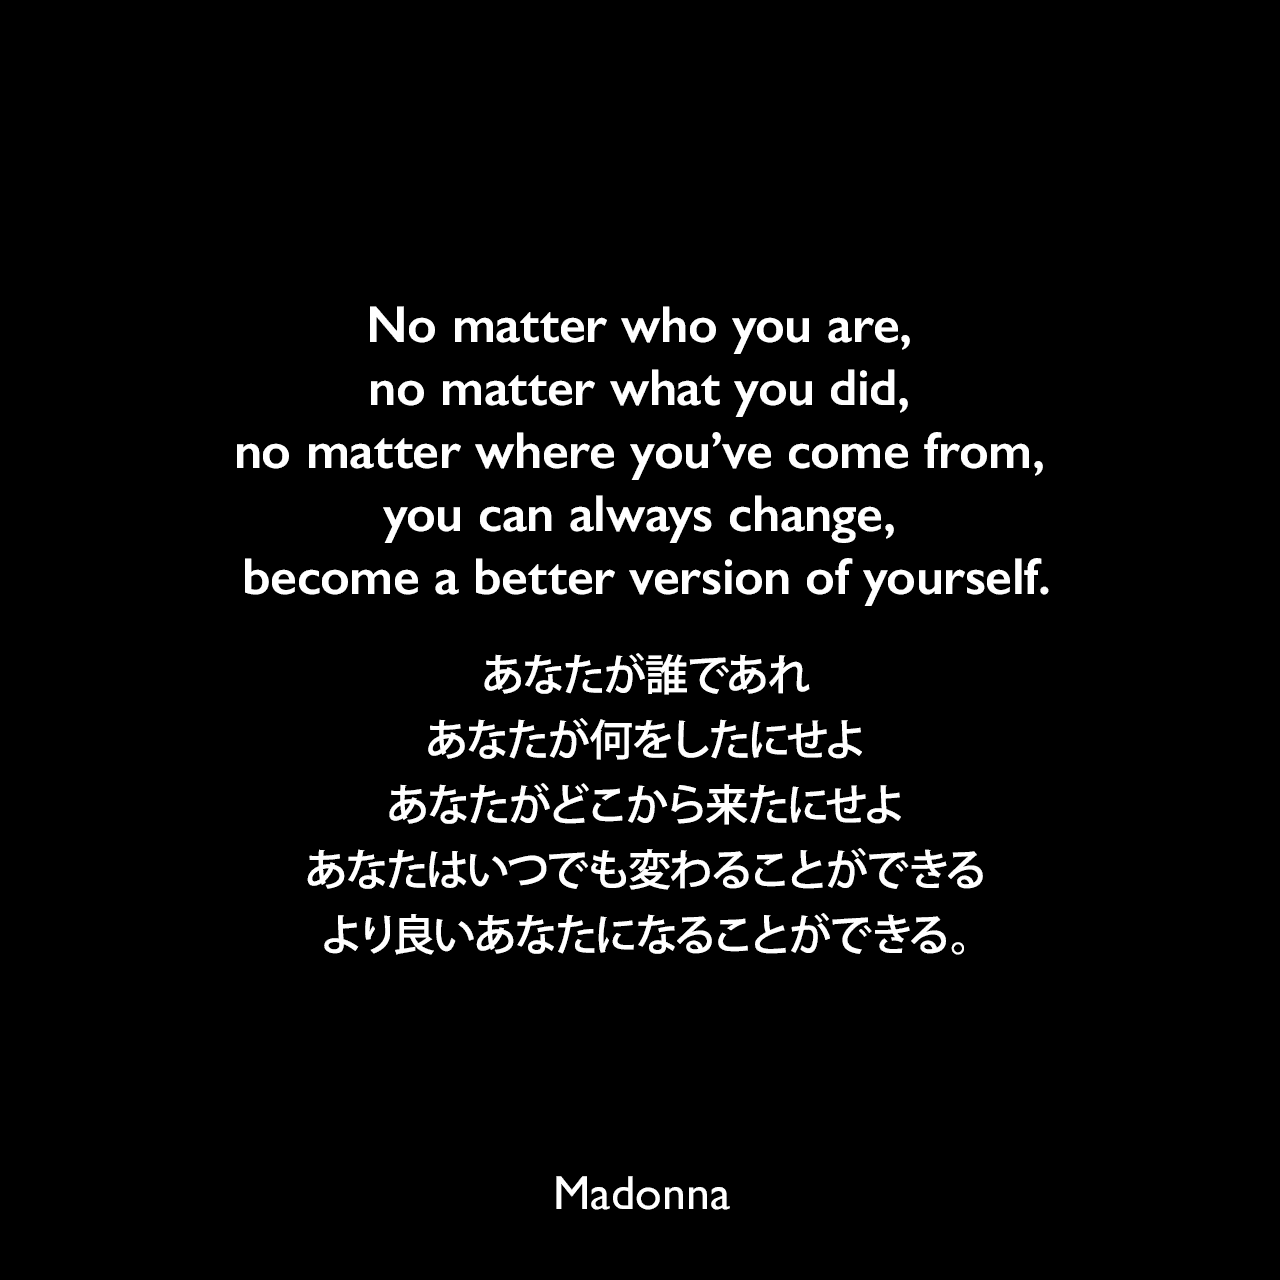 No matter who you are, no matter what you did, no matter where you've come from, you can always change, become a better version of yourself.あなたが誰であれ、あなたが何をしたにせよ、あなたがどこから来たにせよ、あなたはいつでも変わることができる、より良いあなたになることができる。Madonna